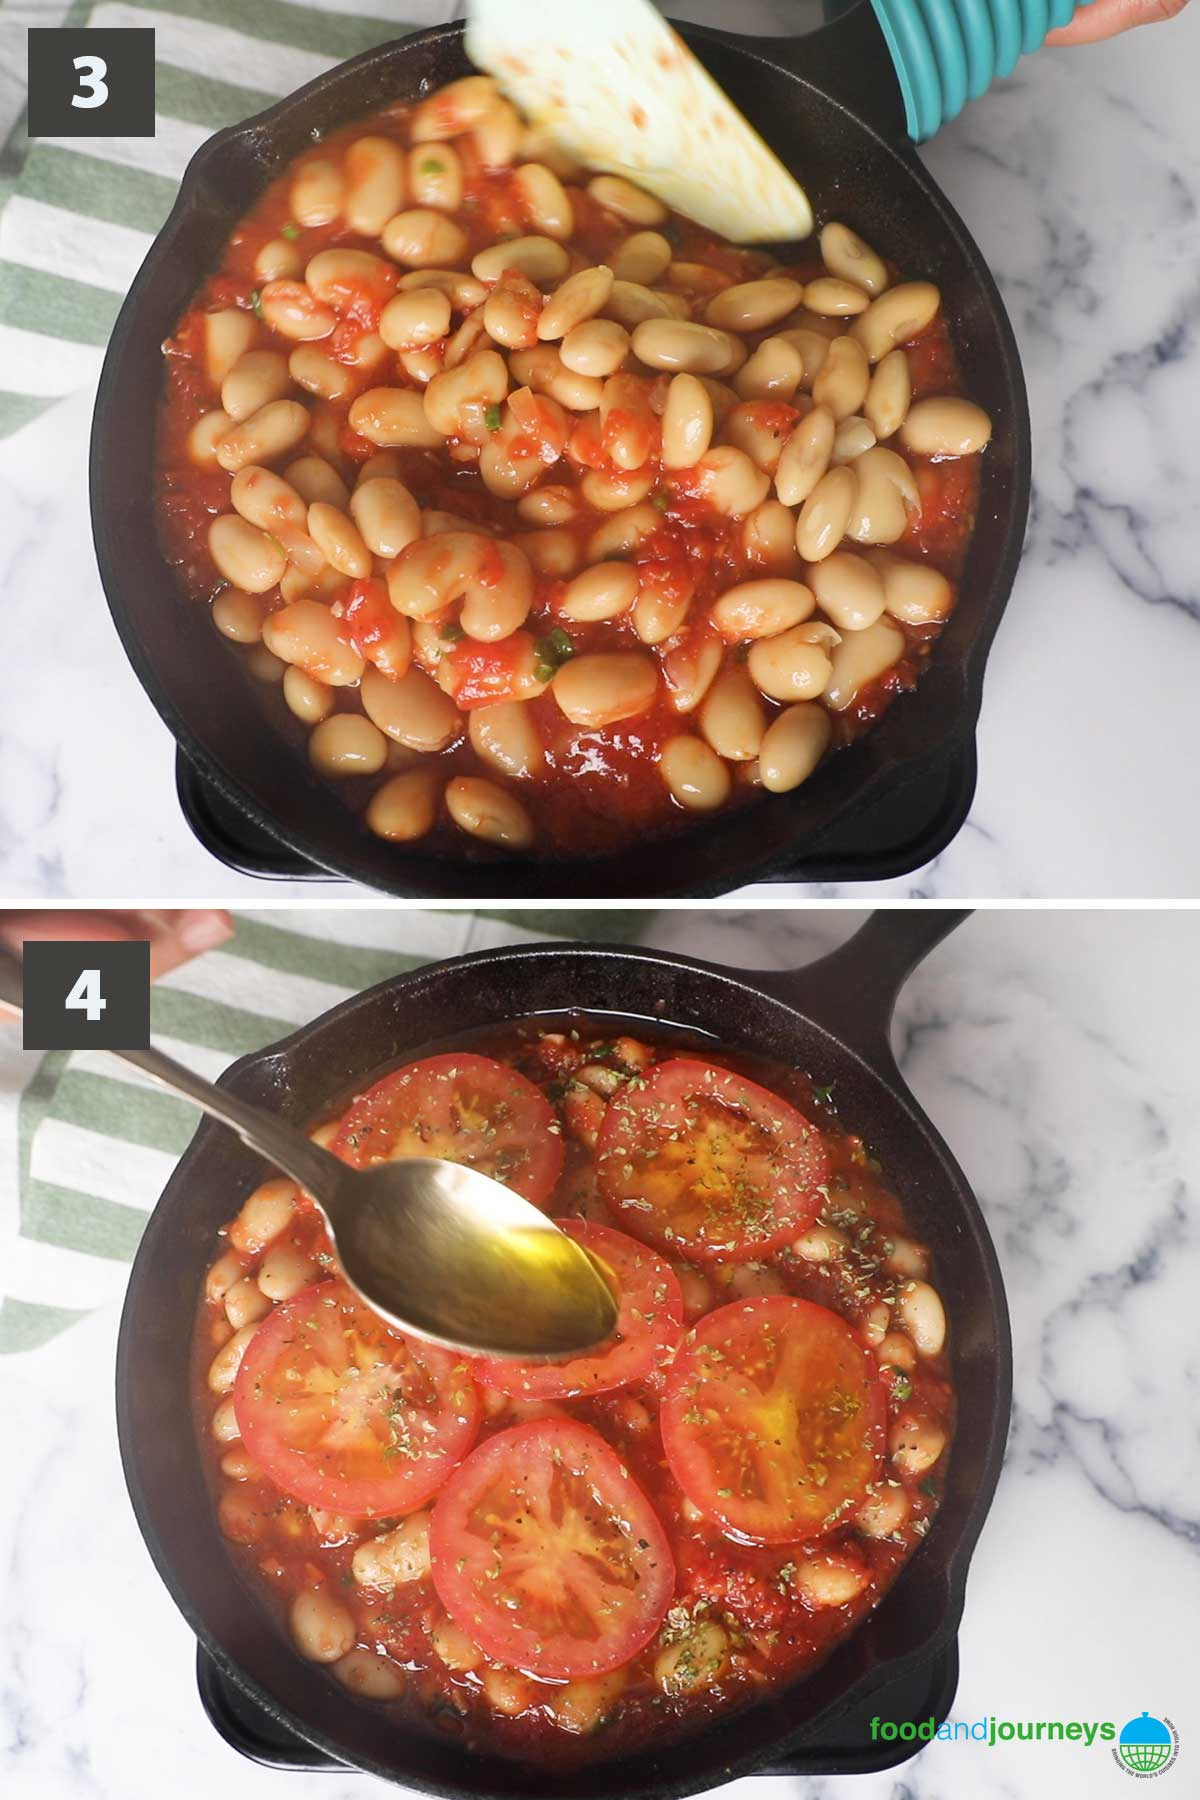 Updated second part of a collage of images showing the step by step process of making Greek Baked Beans at home.